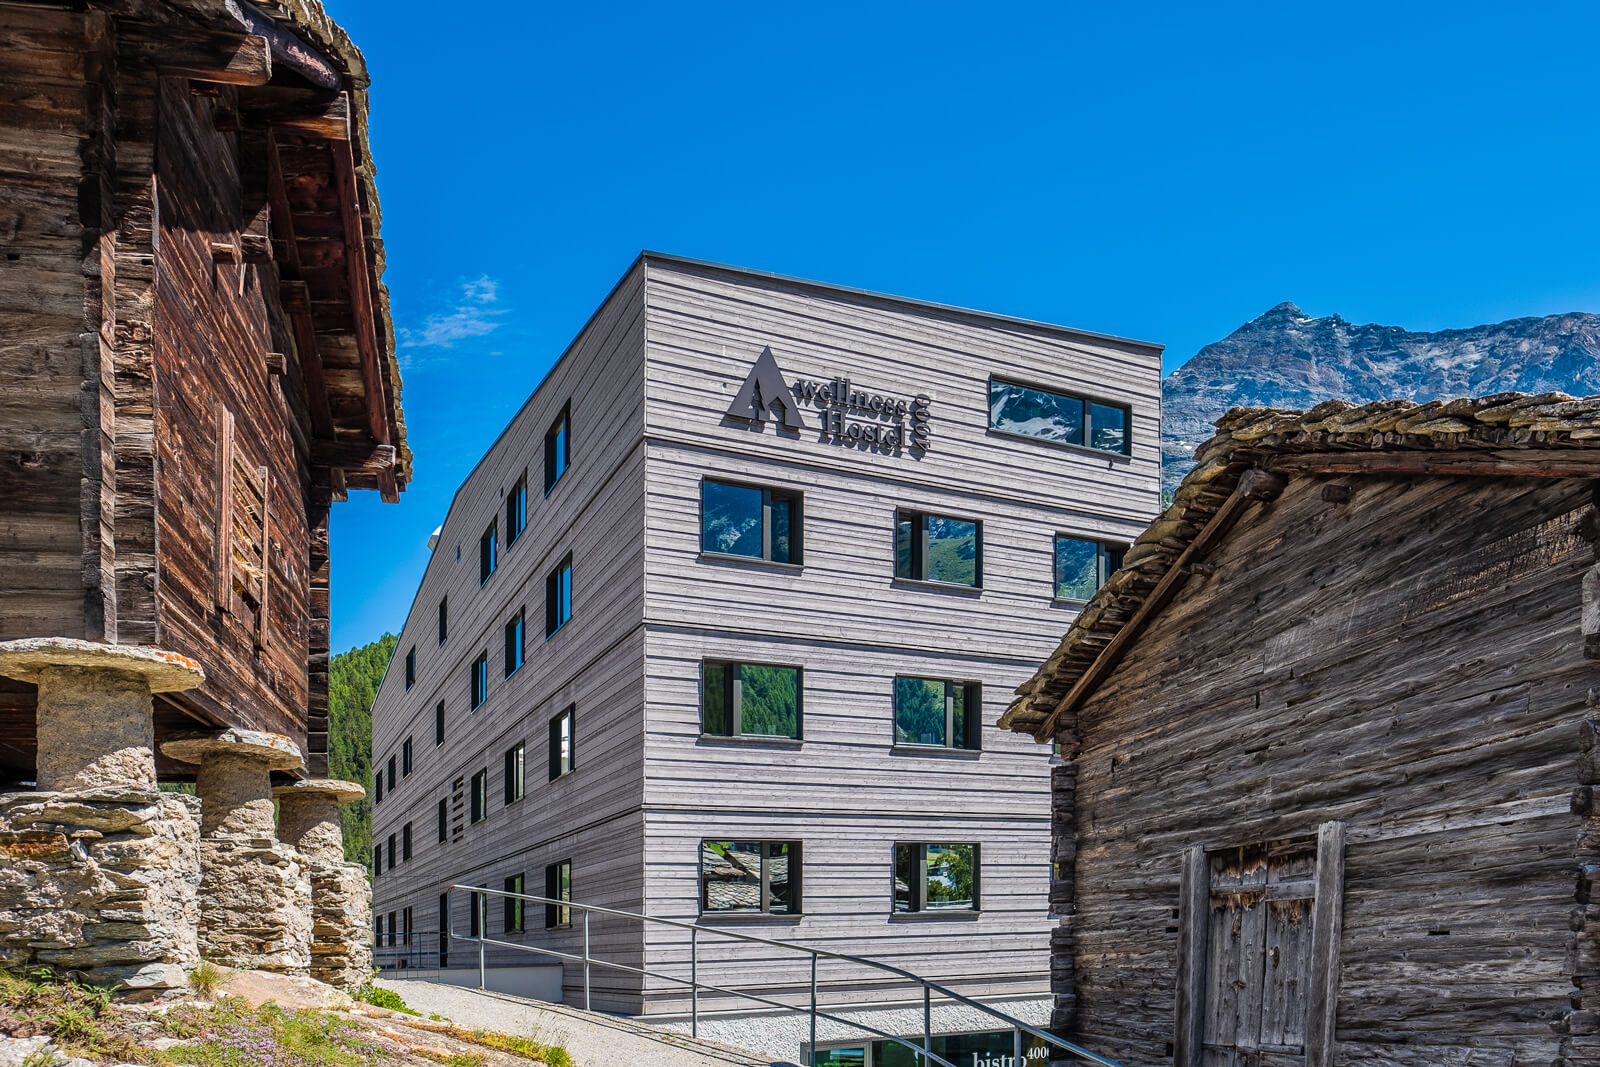 Saas-Fee Youth Hostel